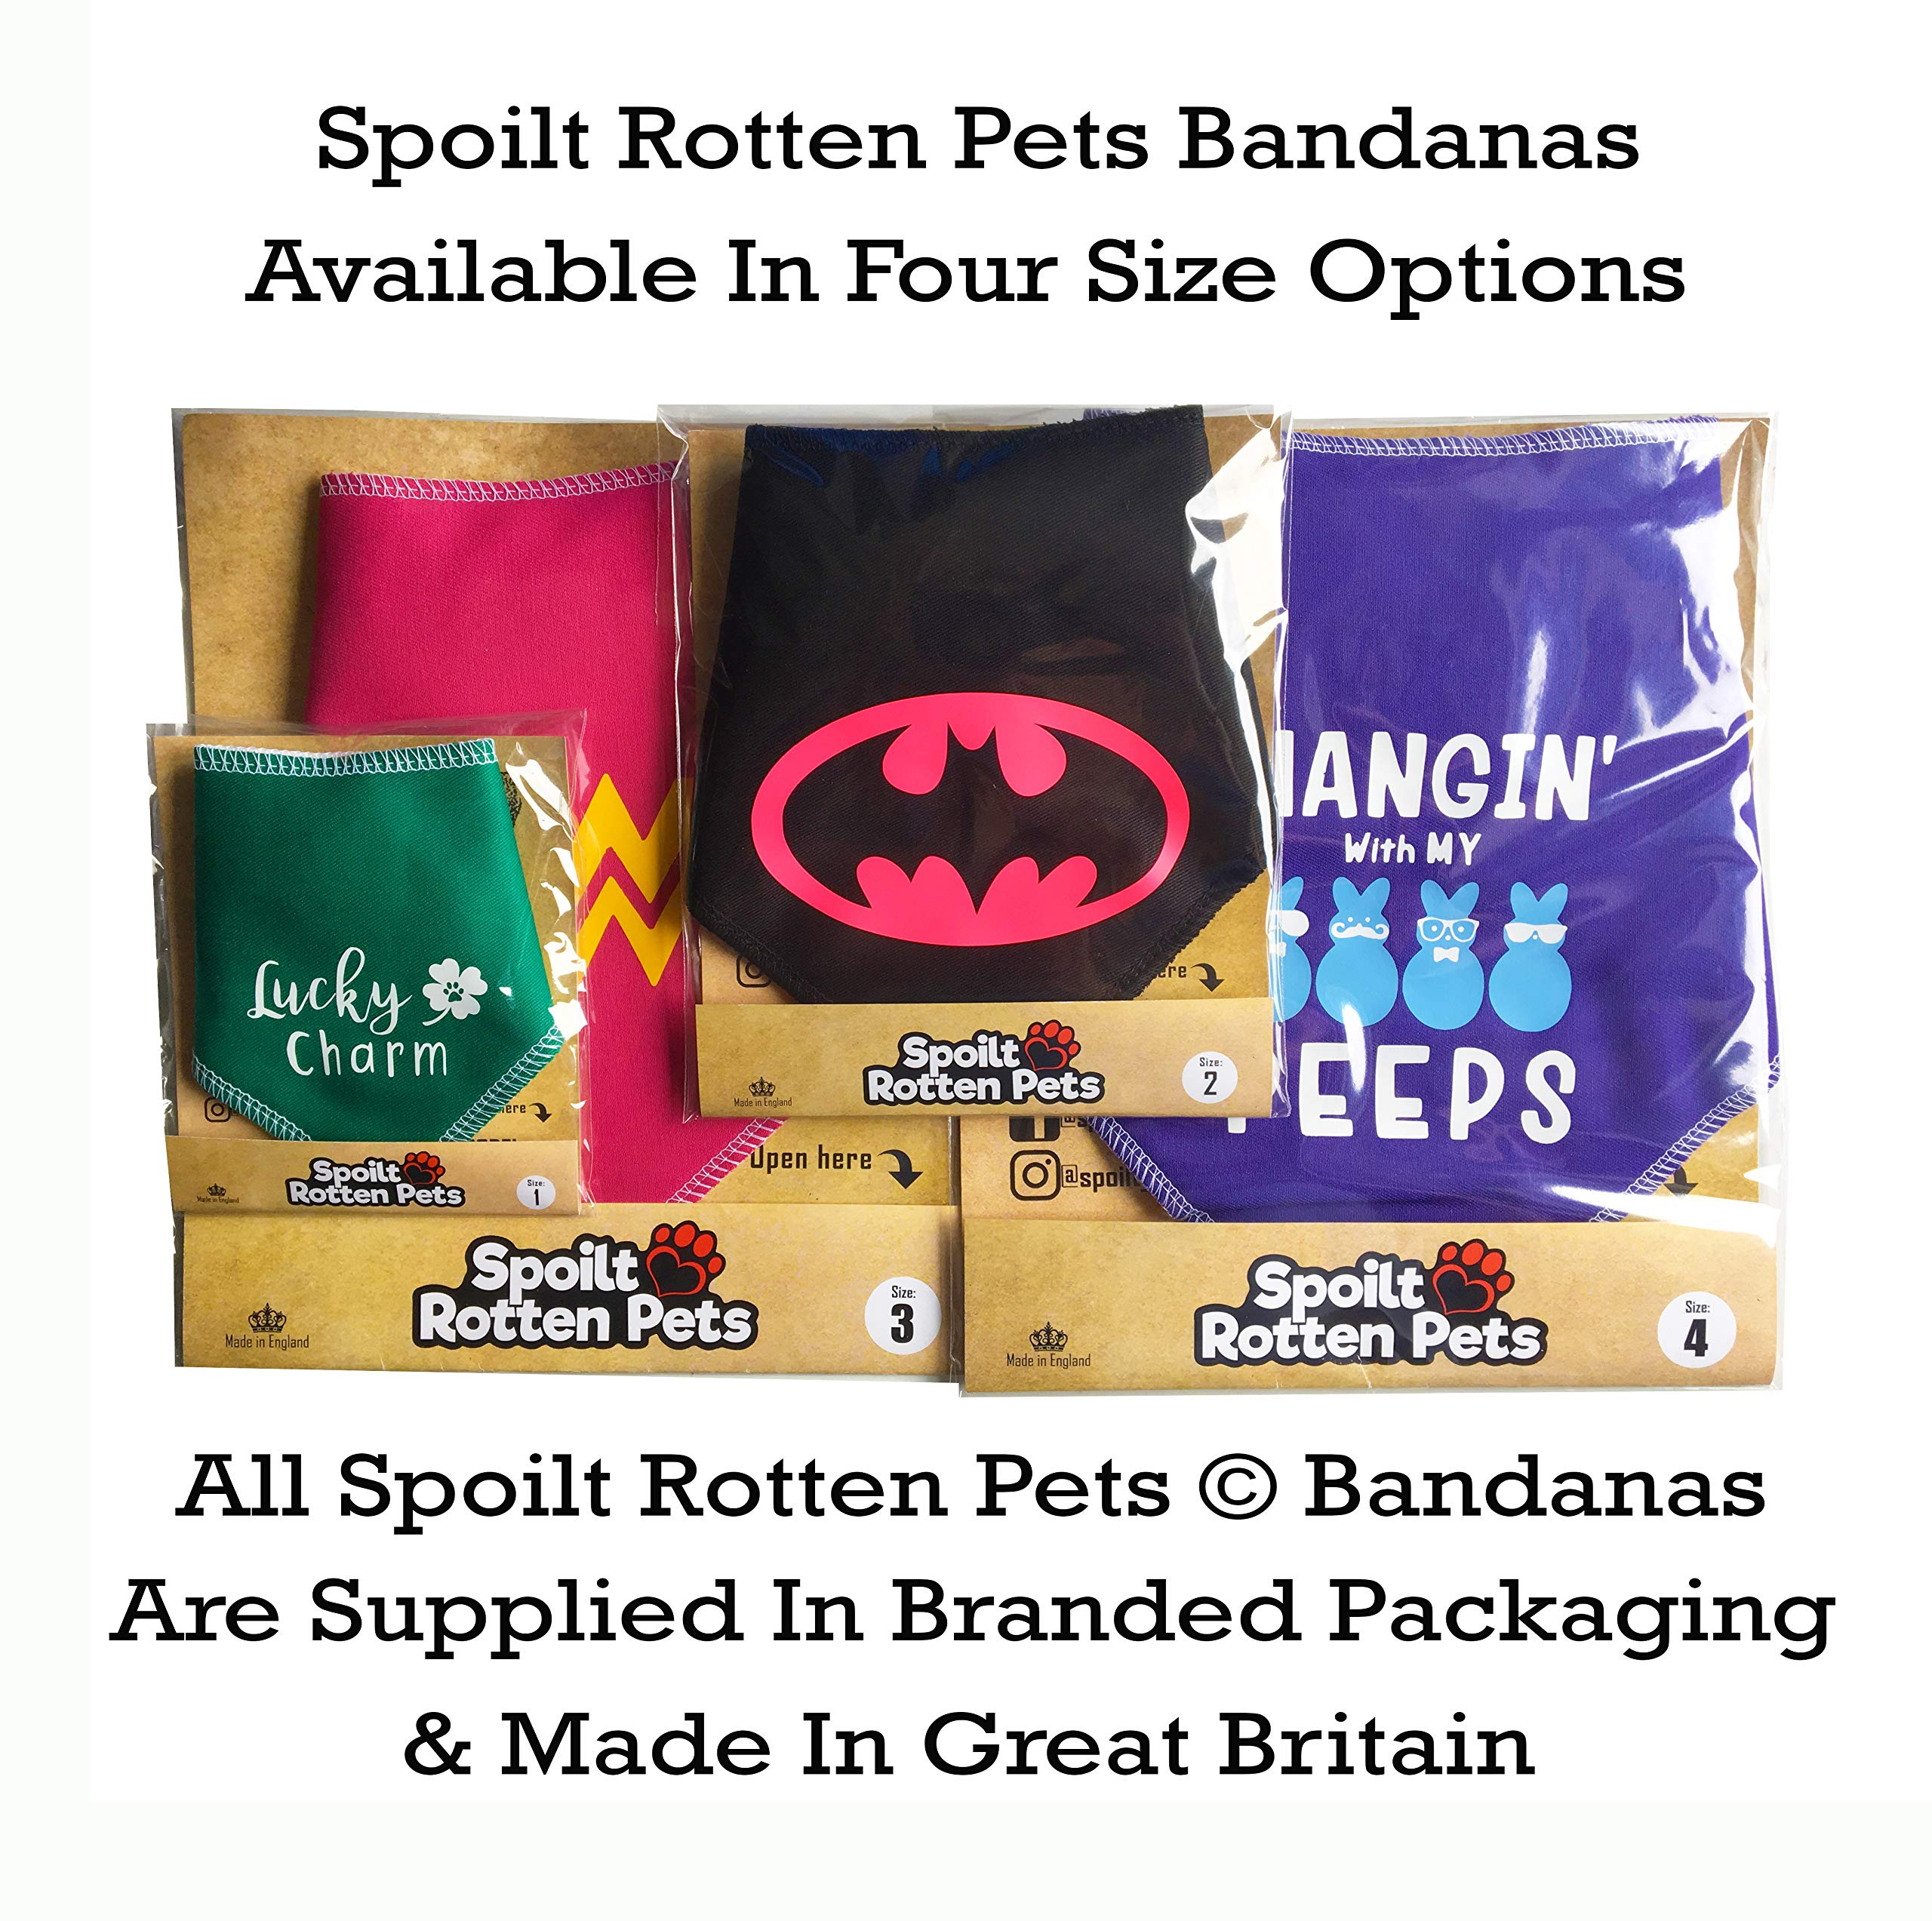 Spoilt Rotten Pets, S2 RED R2 Pee Poo Star Wars Inspired Dog Bandana Suitable For Shih-tzu, Westies, Terriers & Cockerpoo Sized Dogs